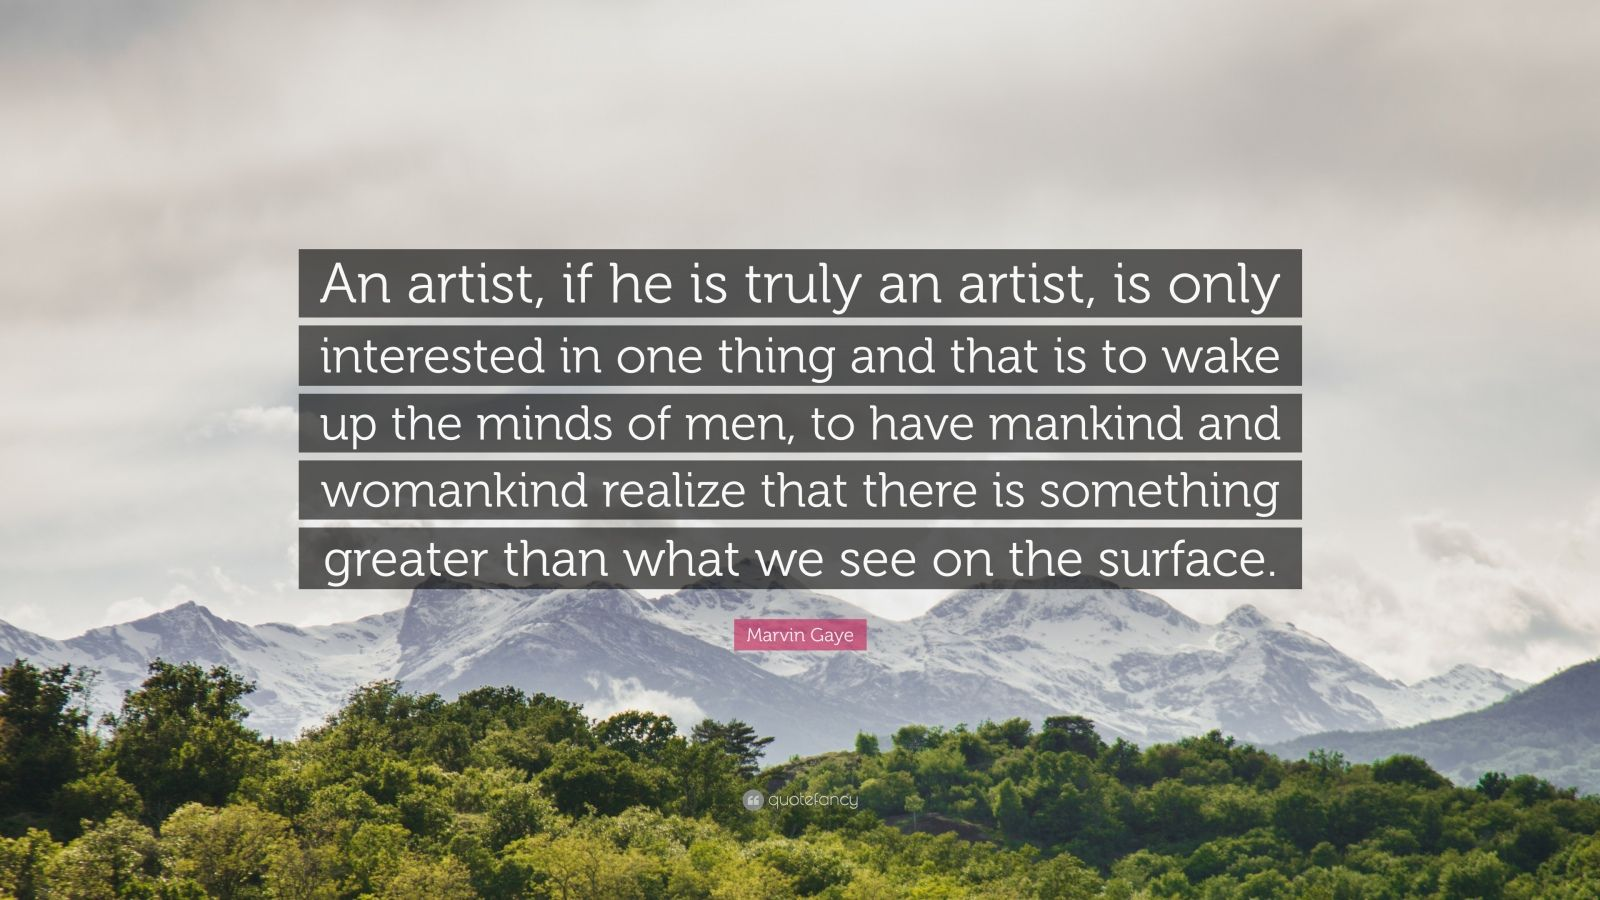 """Marvin Gaye Quote: """"An artist, if he is truly an artist, is only interested in one thing and that is to wake up the minds of men, to have mankind and womankind realize that there is something greater than what we see on the surface."""""""